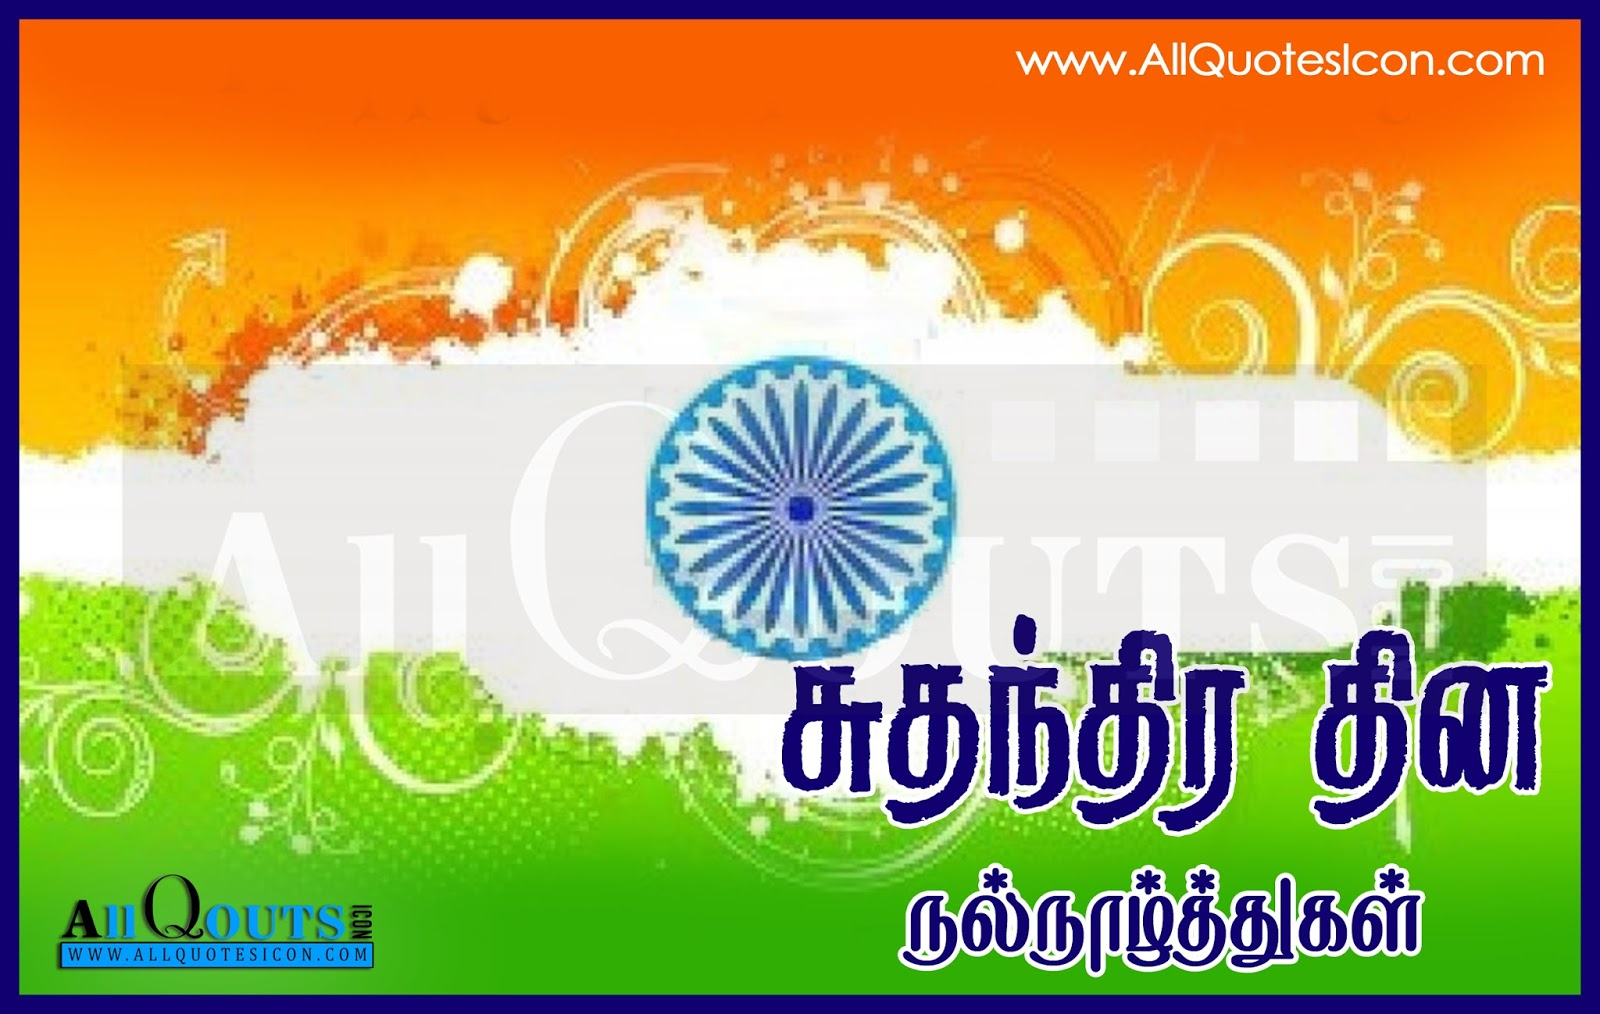 Independence day wishes in tamil hd wallpapers best tamil kavithai tamil independence day quotes images motivation inspiration thoughts kristyandbryce Gallery